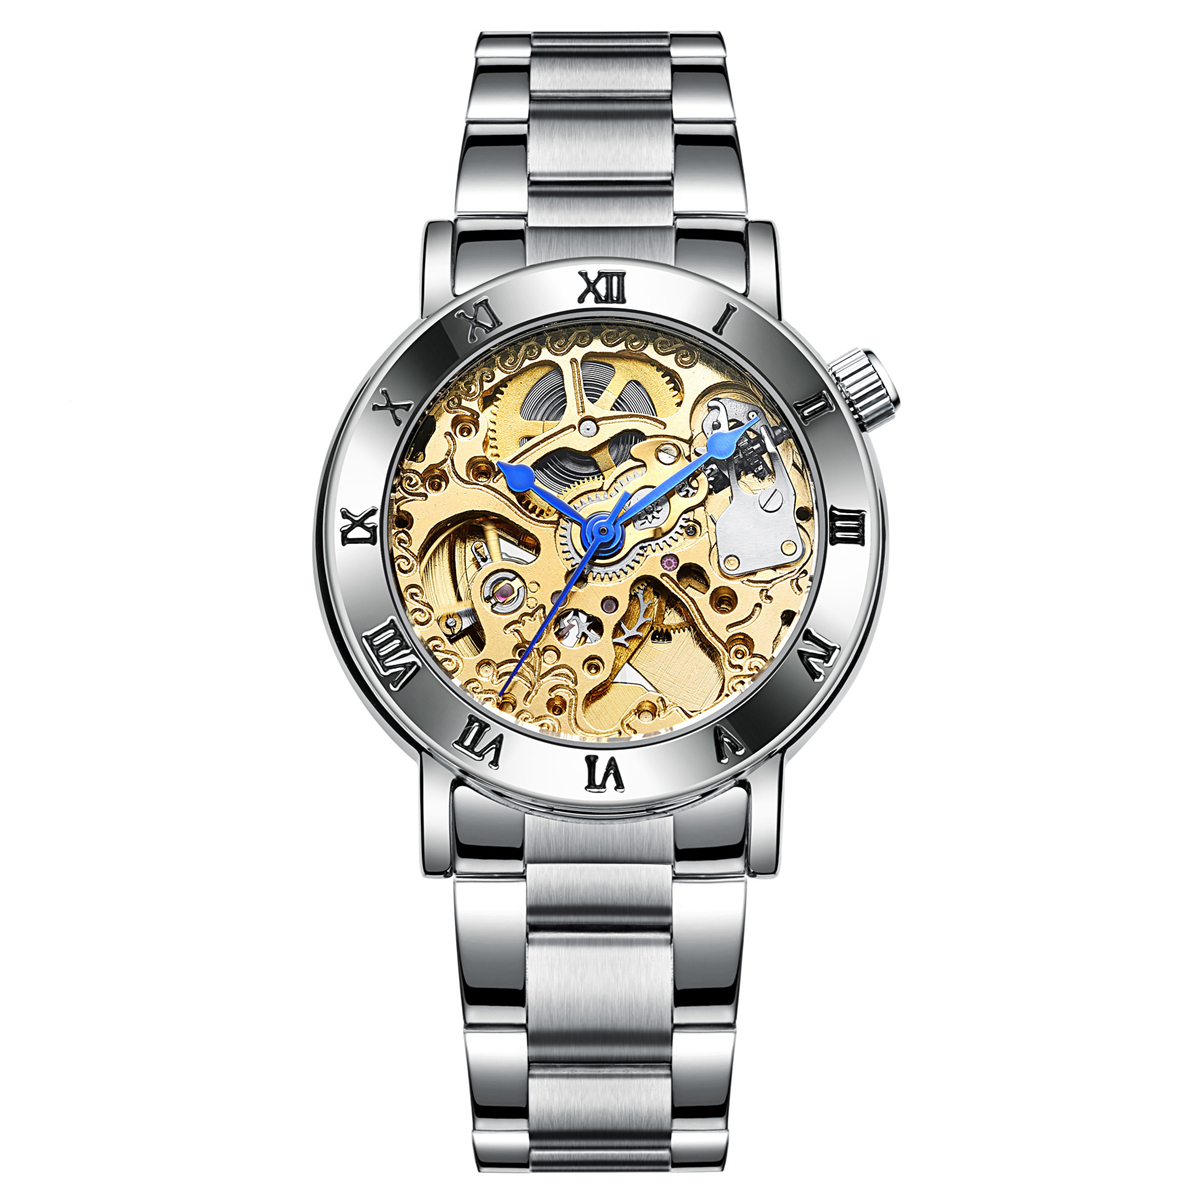 IK COLOURING  Roman Number Scale Hollow Dial Automatic Self-Wind Movement Life Waterproof Women Watch Fashion Style k colouring women ladies automatic self wind watch hollow skeleton mechanical wristwatch for gift box